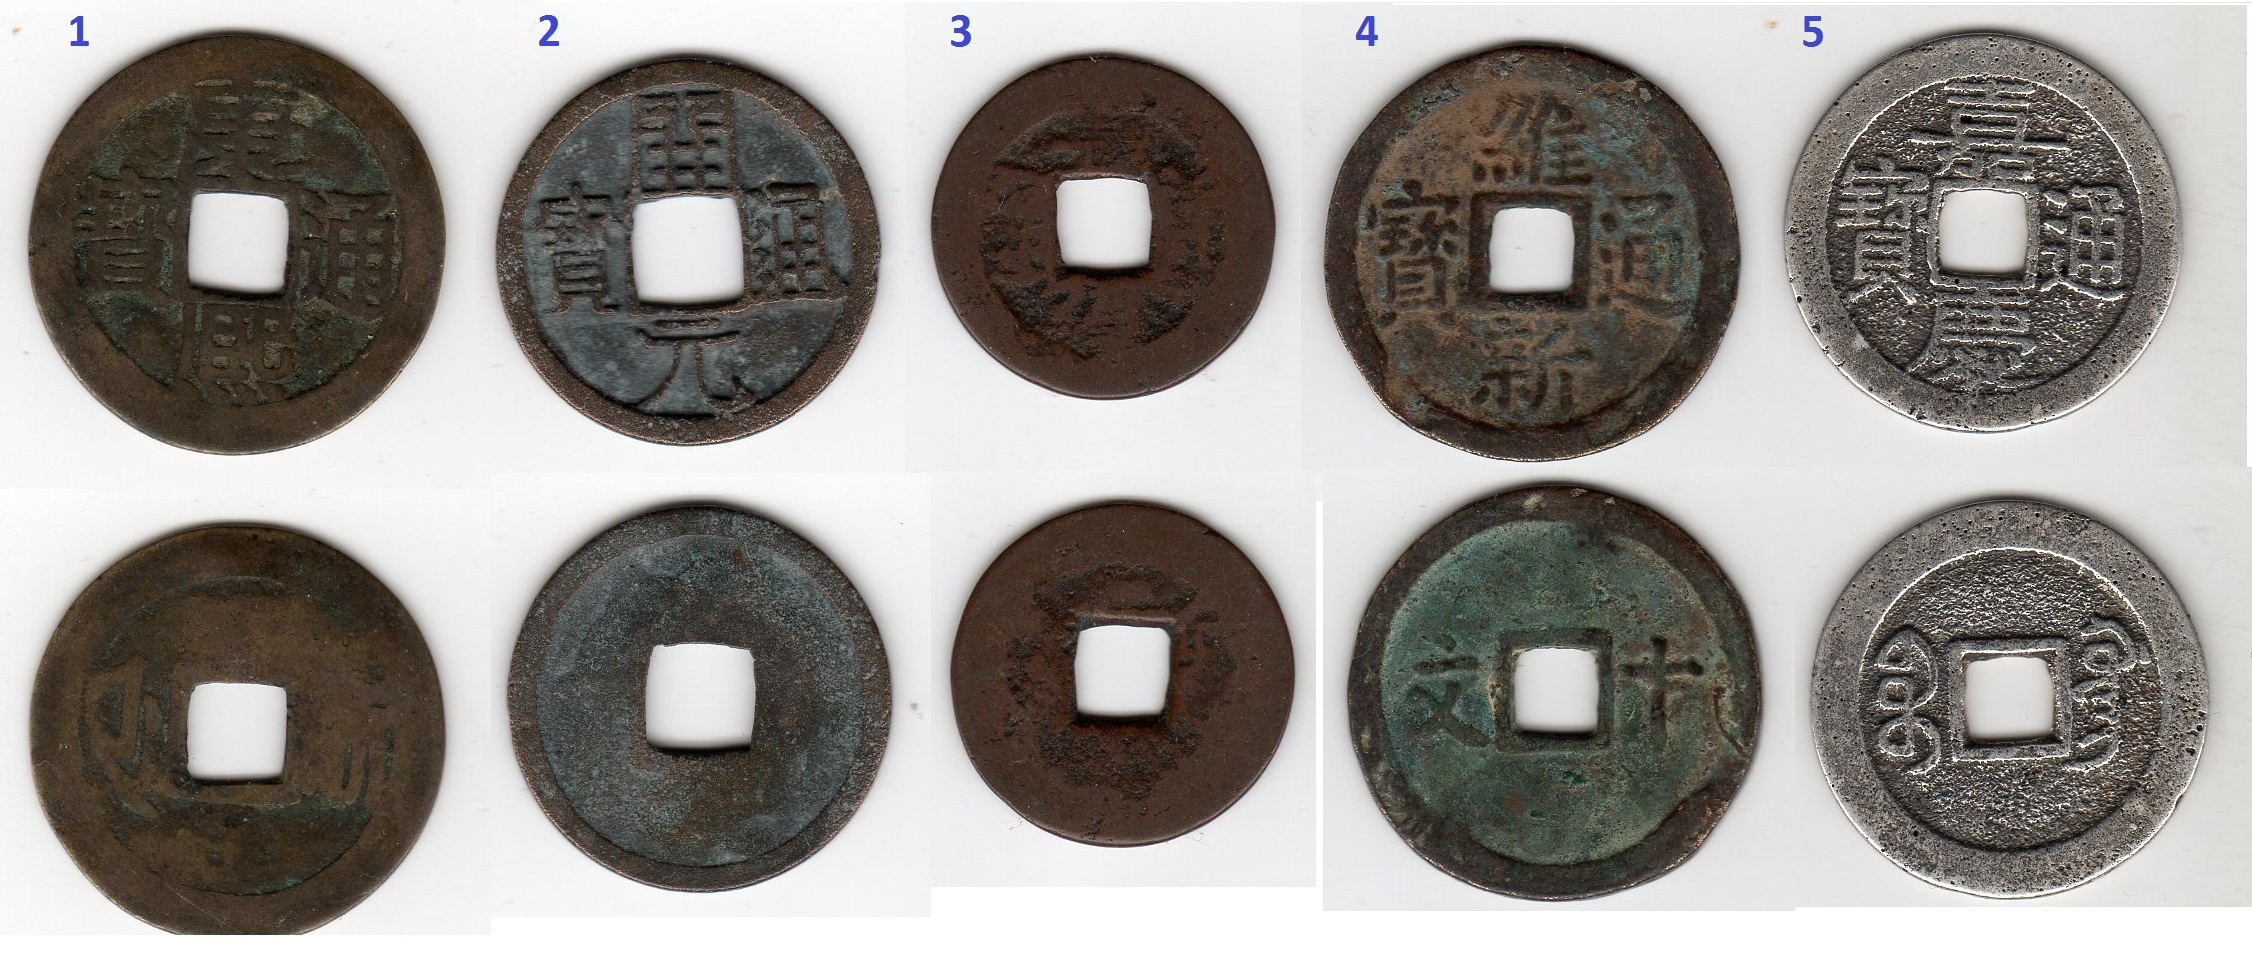 28 Old Chinese Vietnam Cash Coins With Hole For Identification Fake